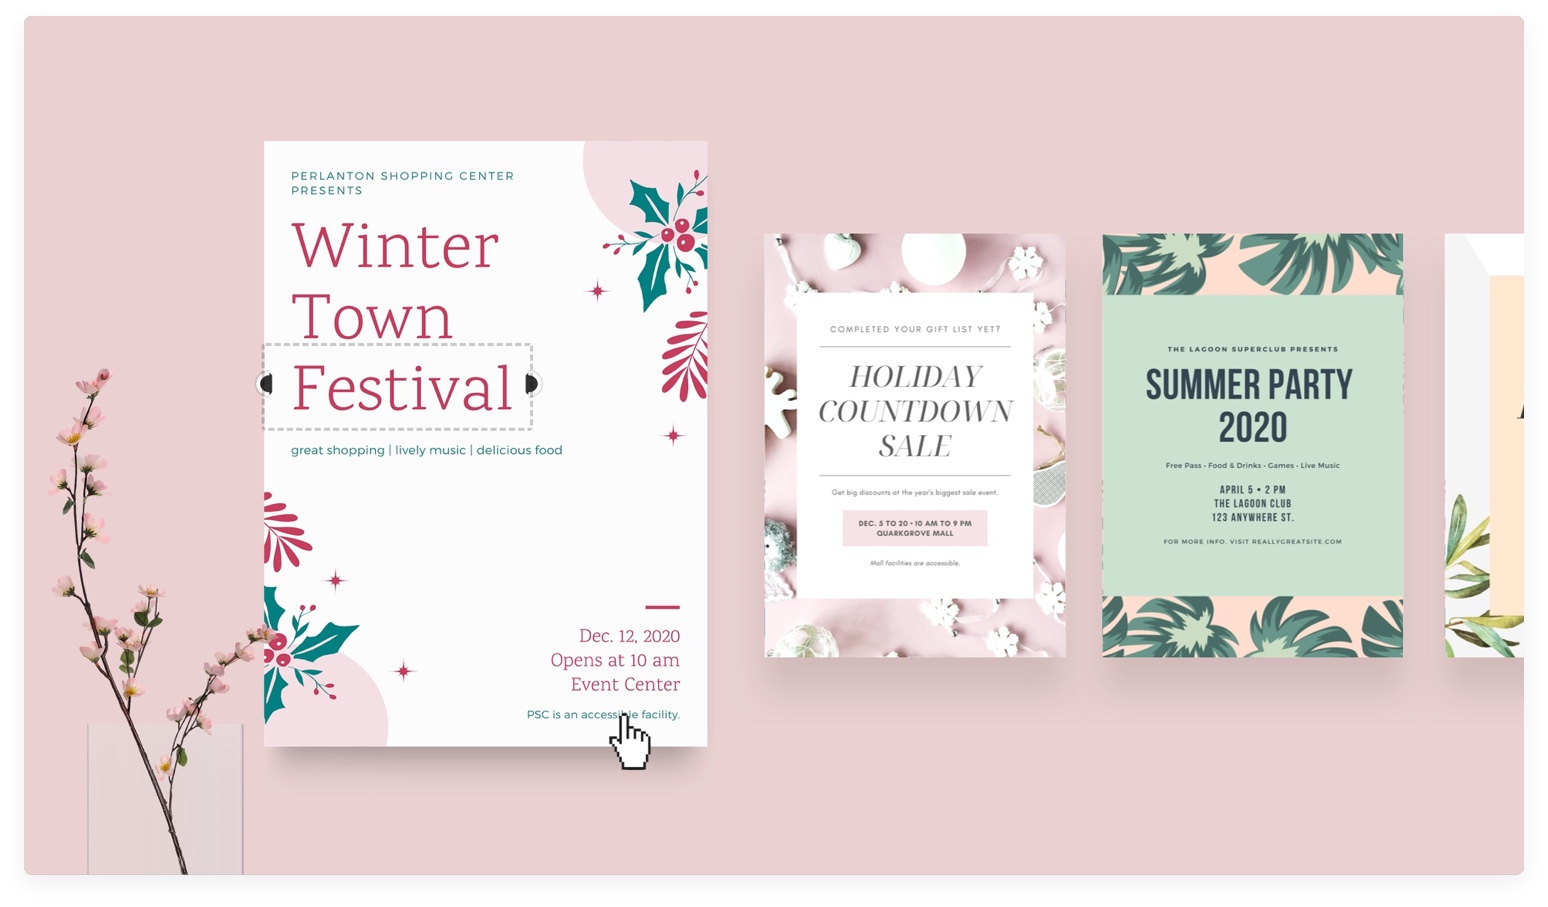 Free Online Flyer Maker: Design Custom Flyers With Canva - About Canva - Create Your Own Free Printable Flyers